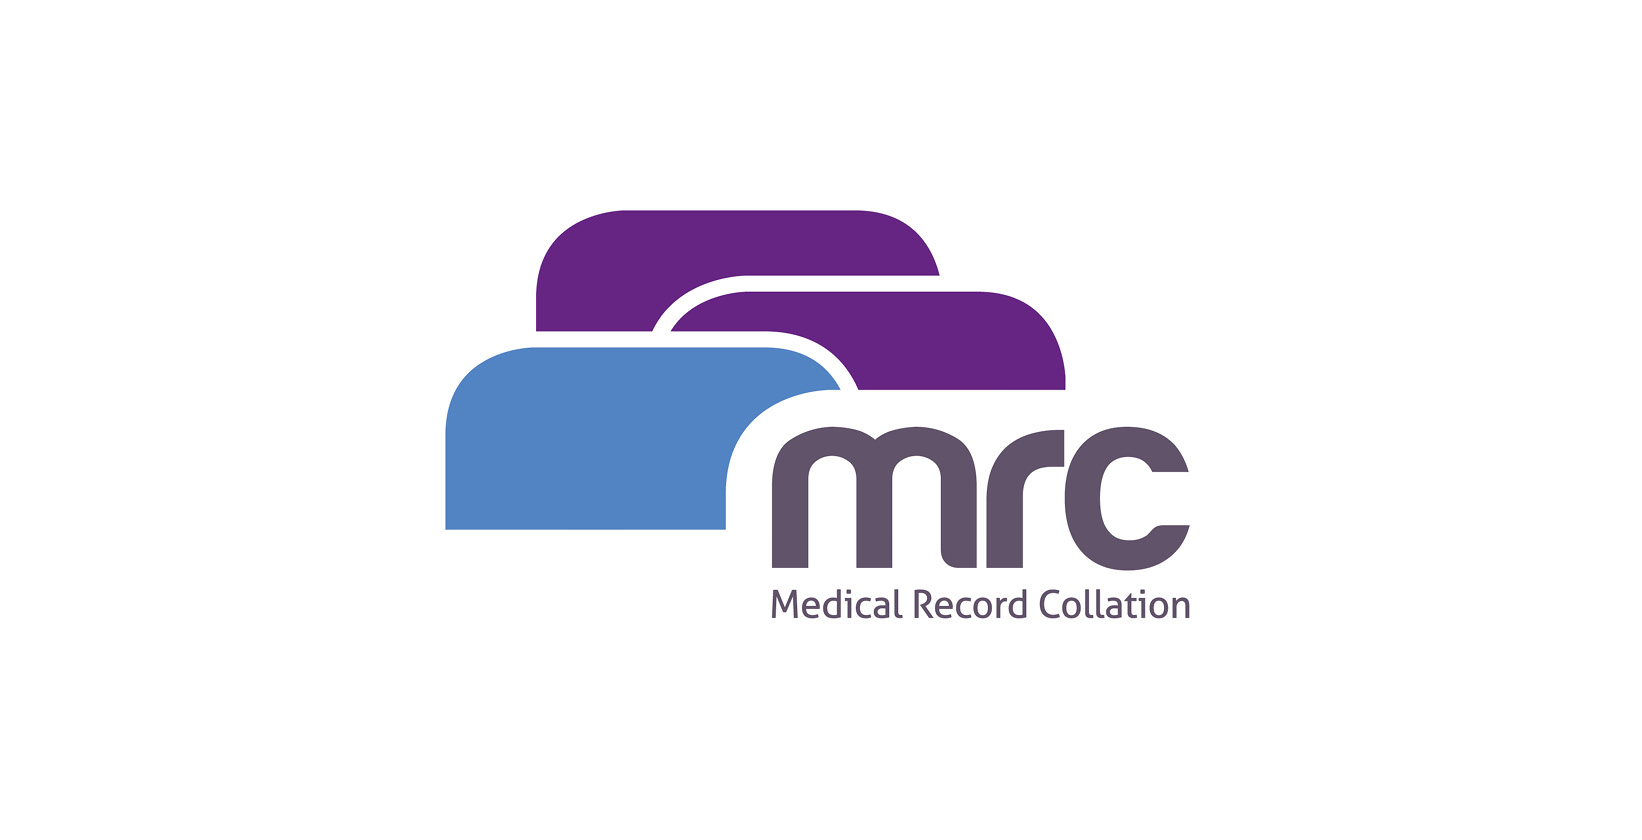 Medical Record Collation